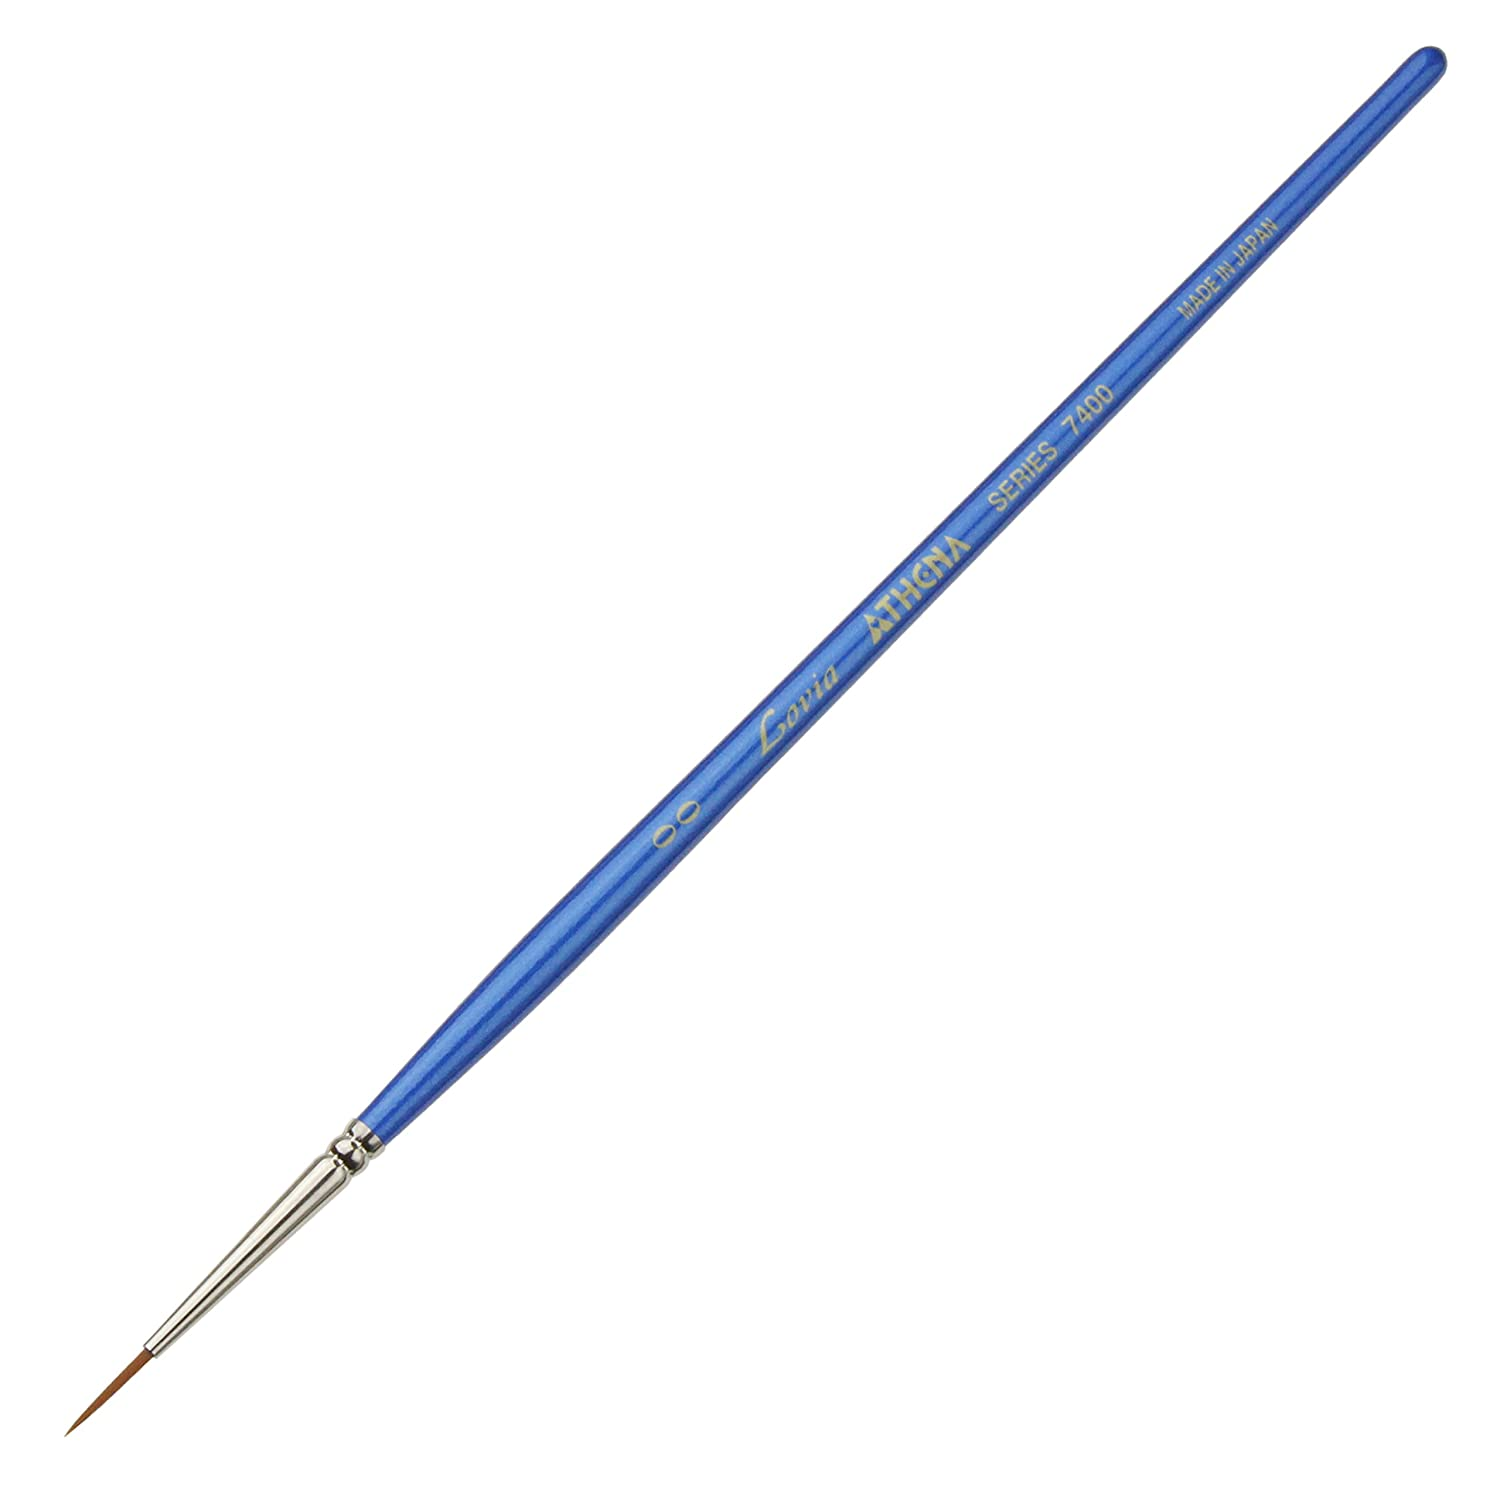 Athena Liner 7400-2/0 Paint Brush 0017400-2/0